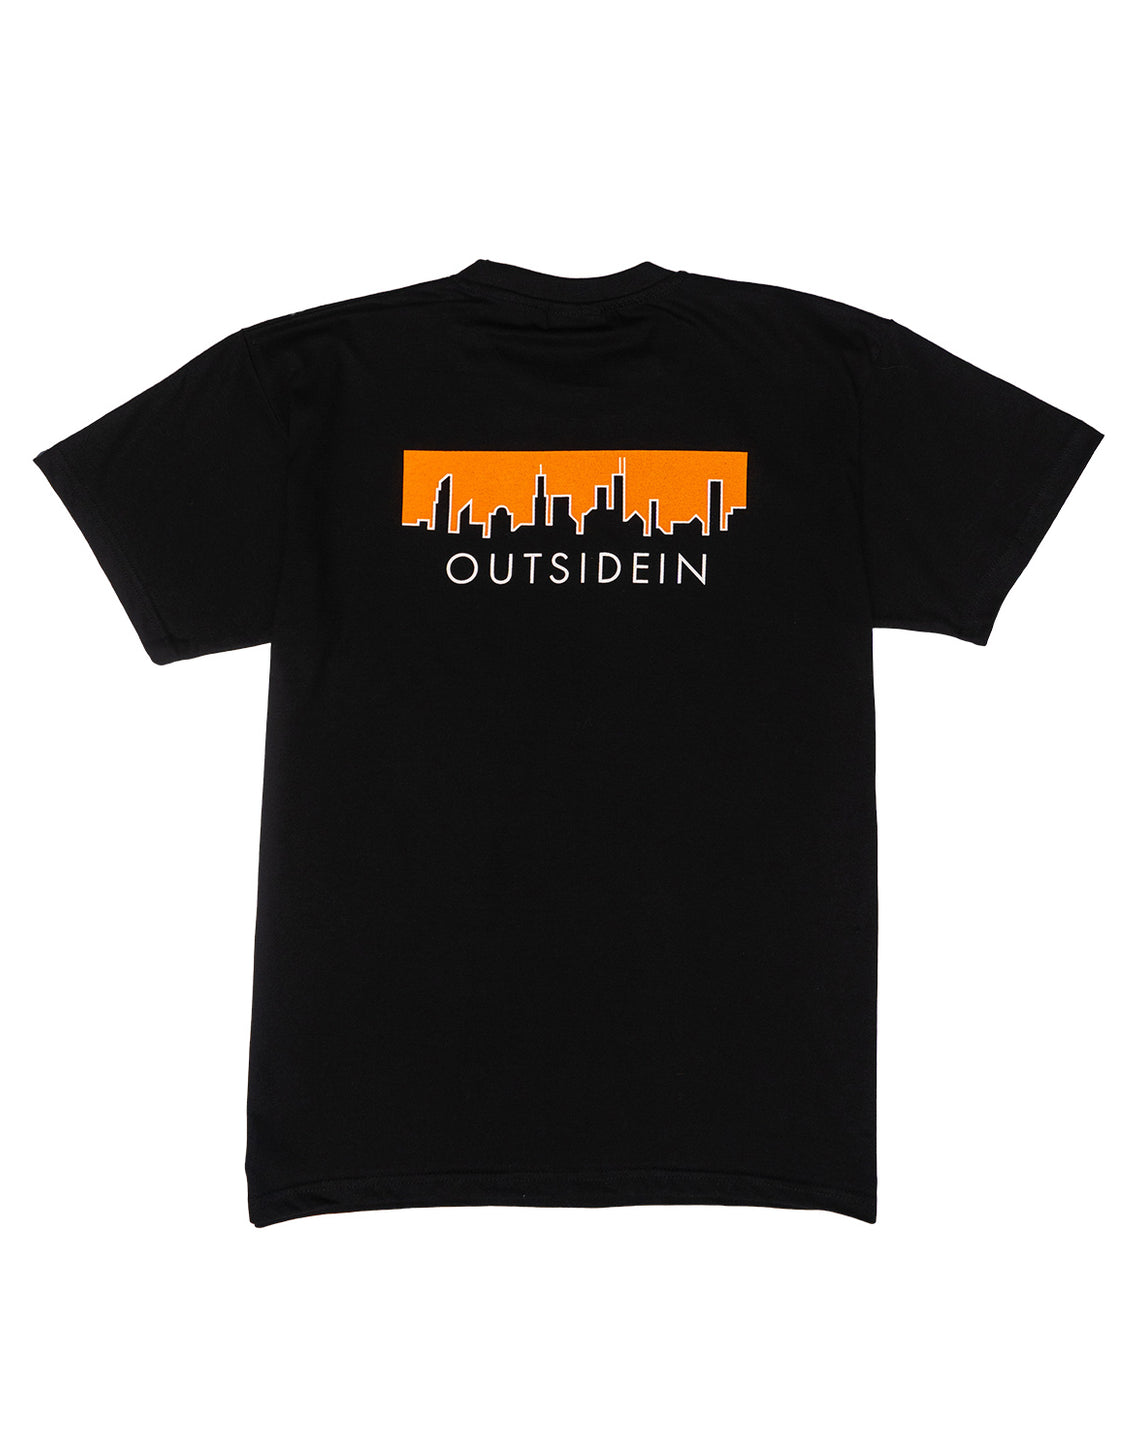 Cityscape T-Shirt Black - OutsideIn